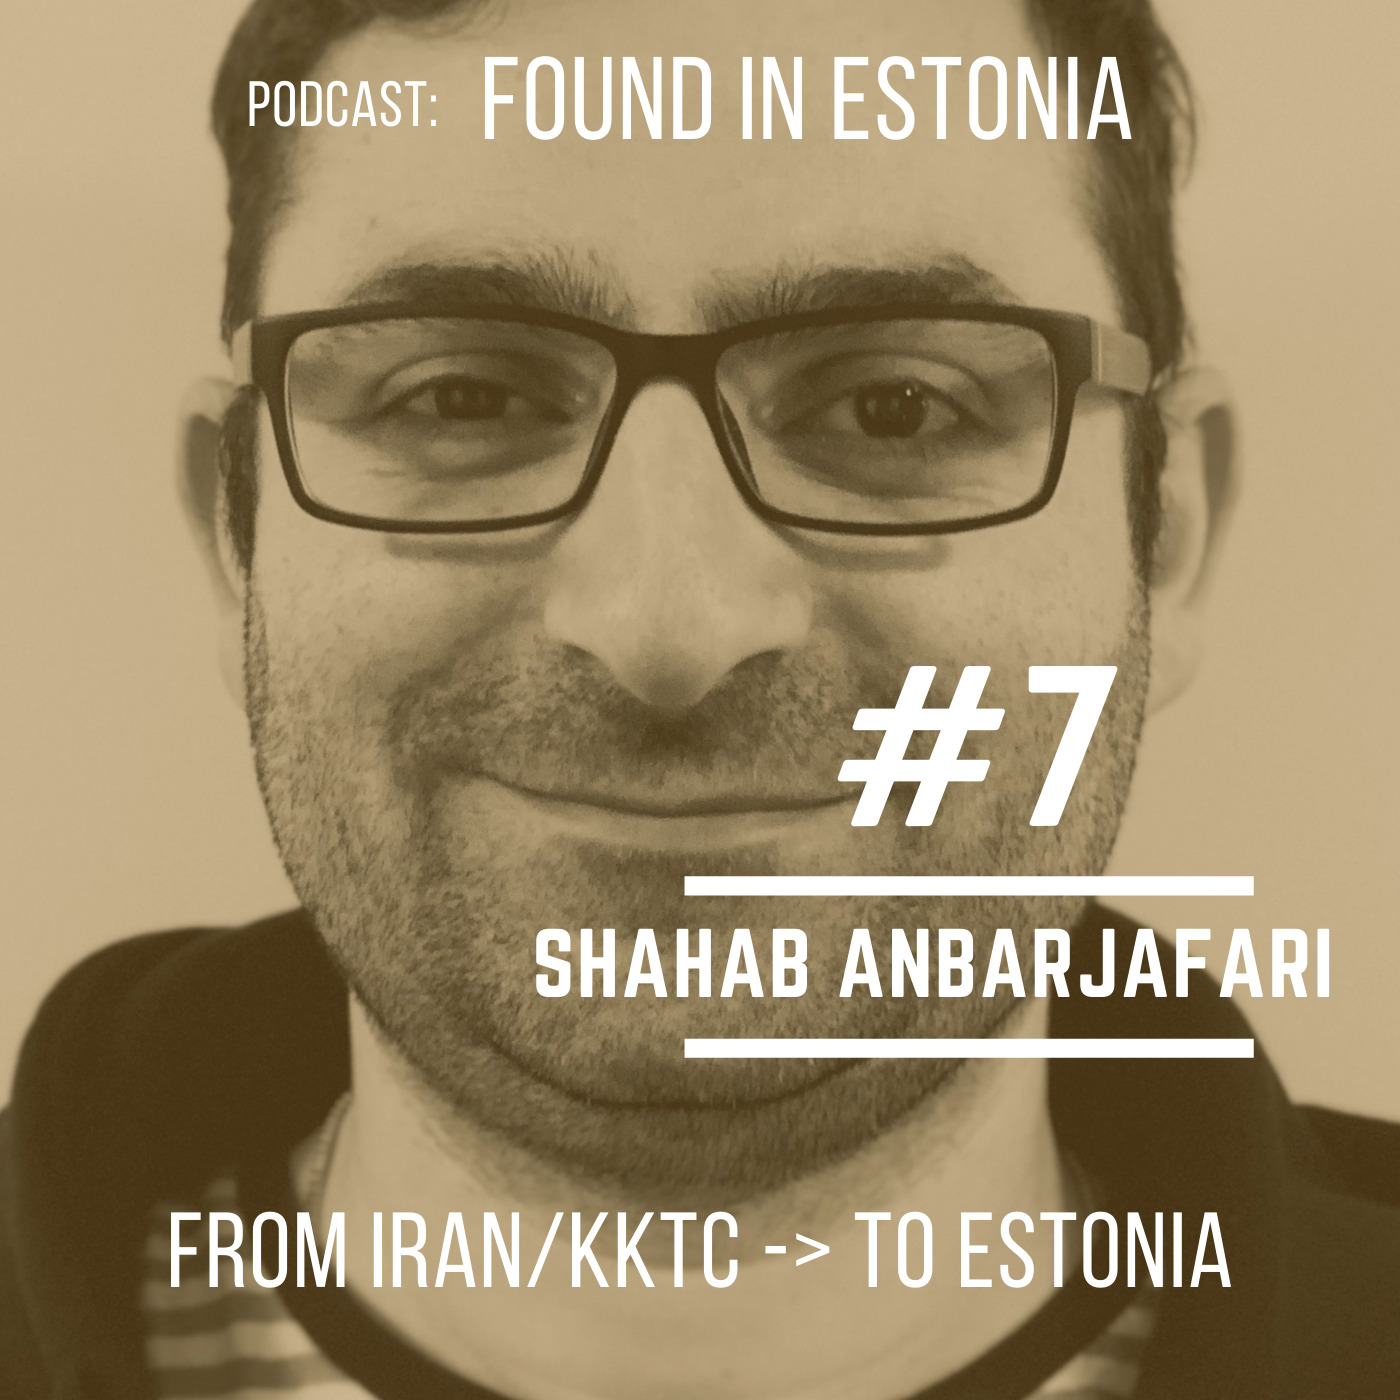 #7 Shahab Abarjafari - from Iran/KKTC to Estonia